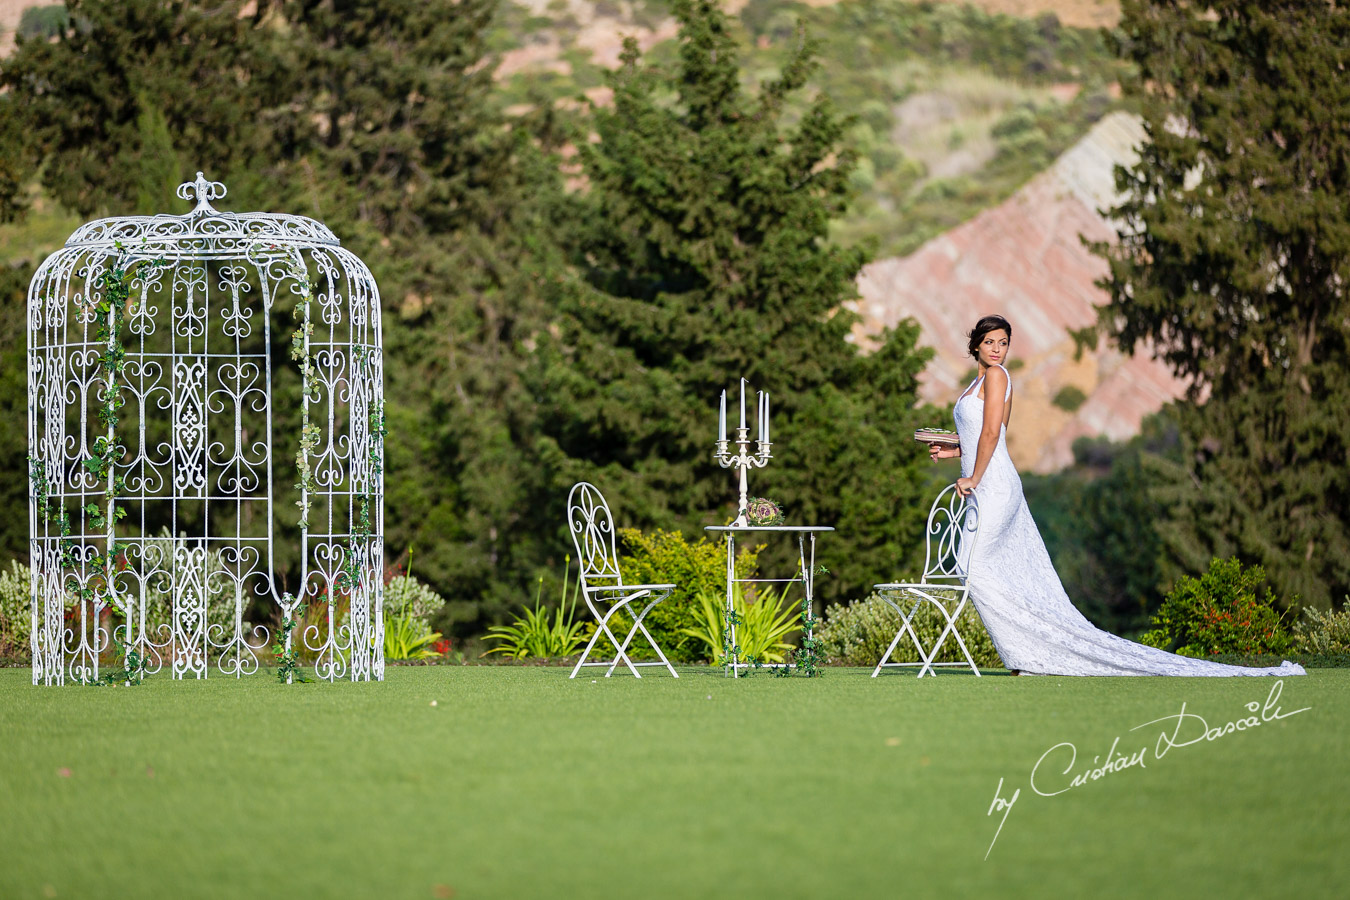 Wedding Editorial Photo Shoot at Secret Valley - 08